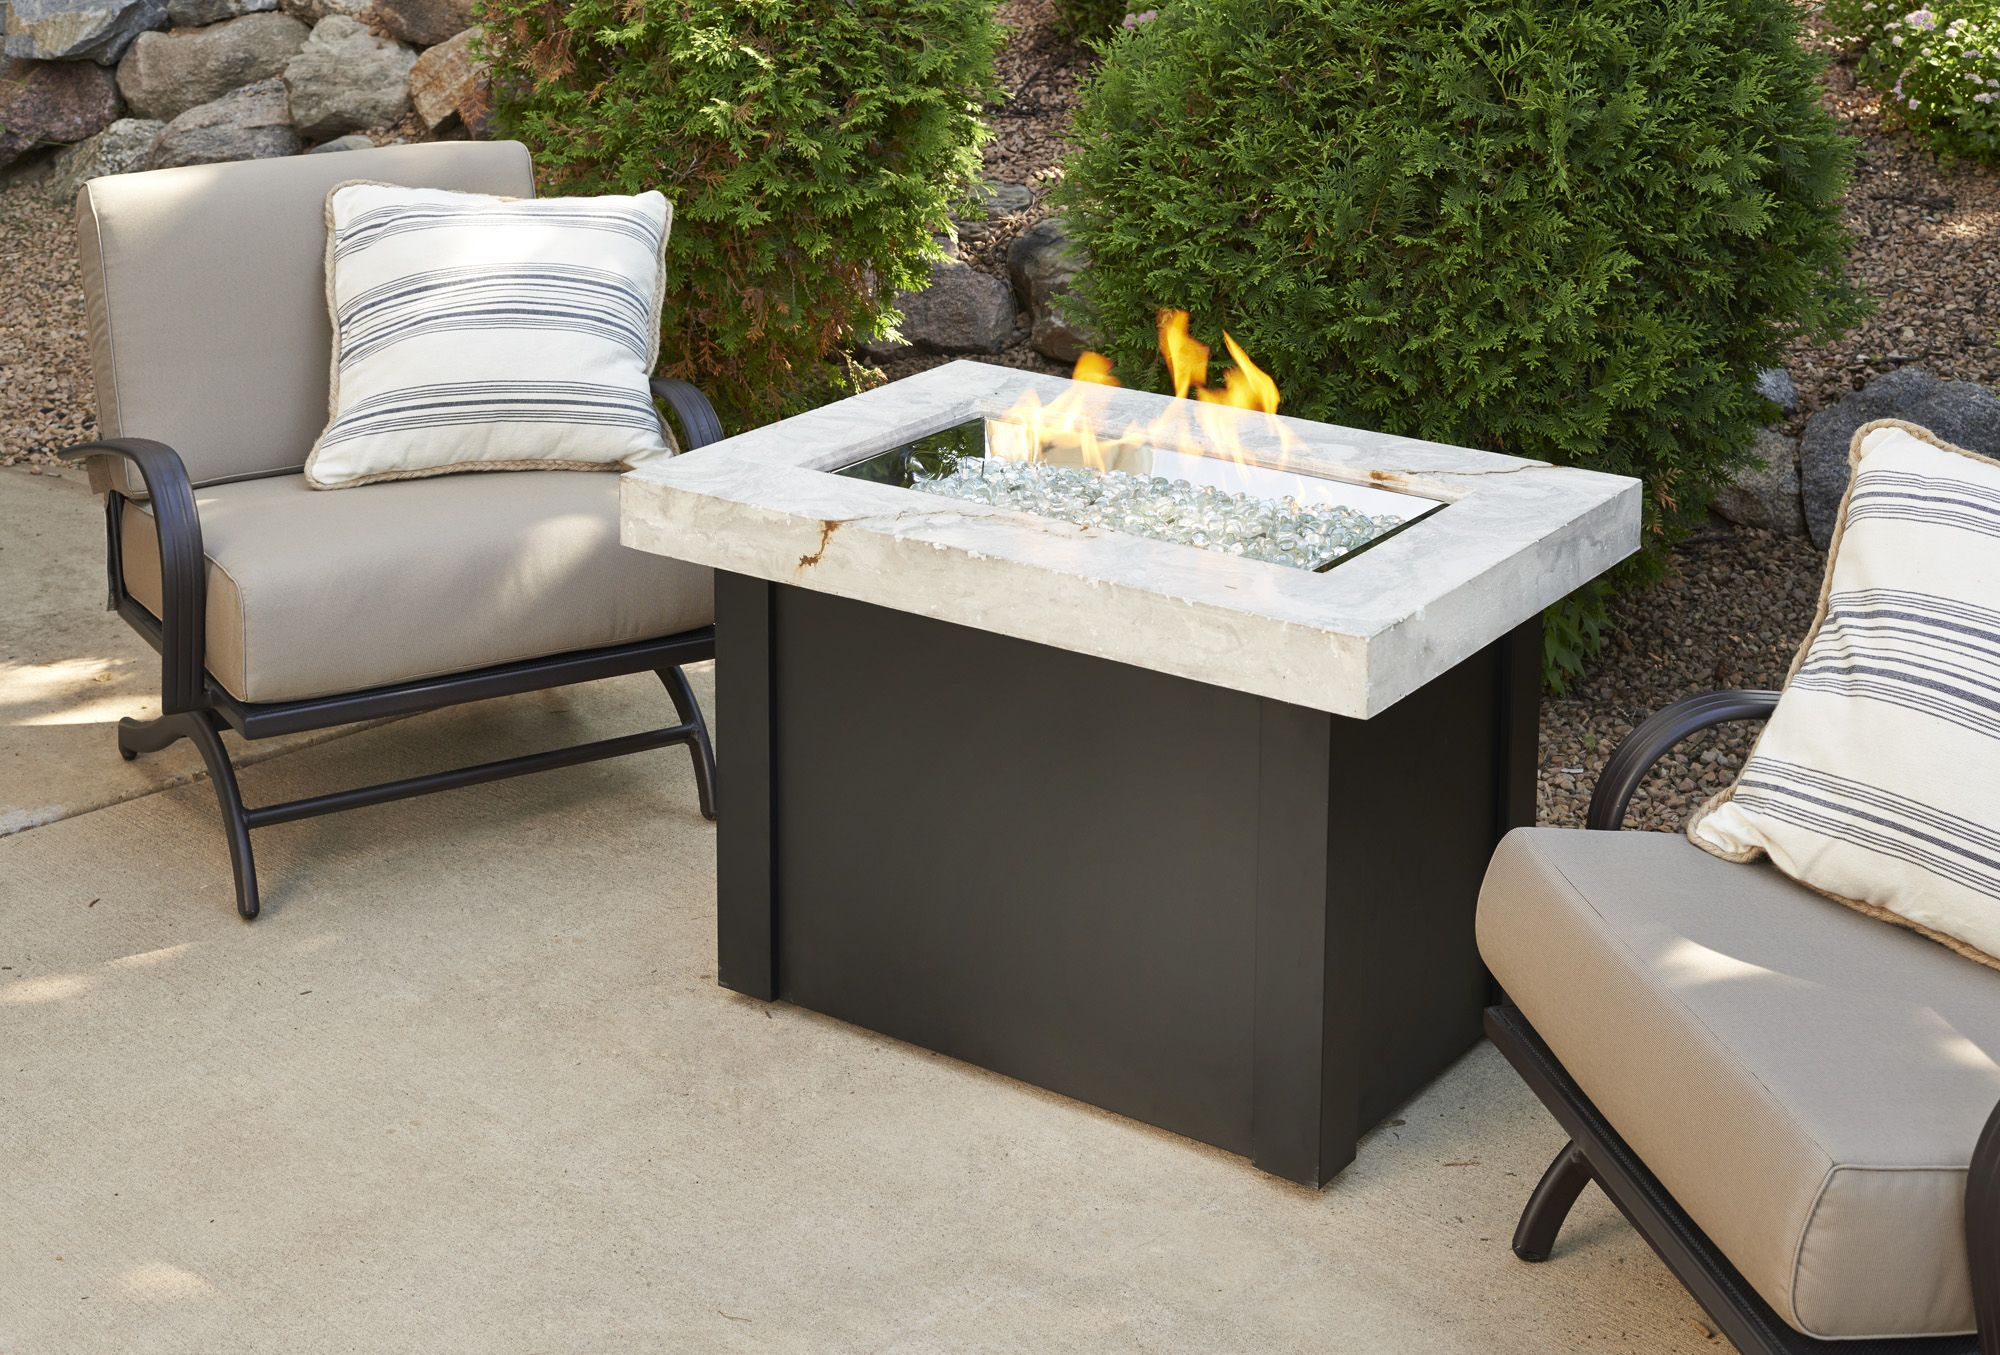 Super Stylish And Compact Fire Pit For Small Spaces Love